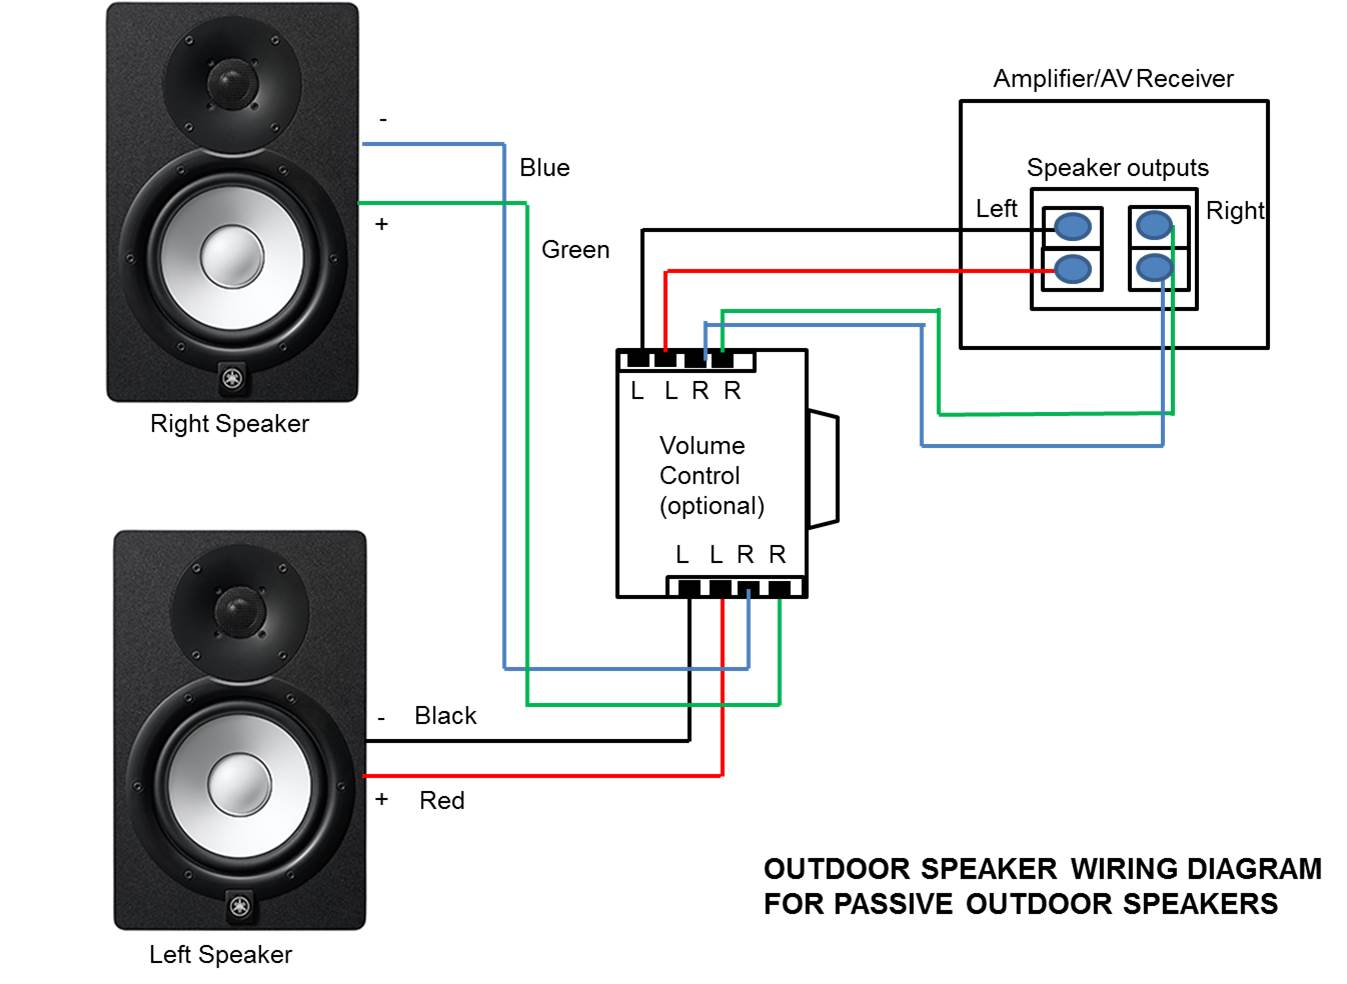 Pa Speaker System Wiring Diagram Best Outdoor Speakers In 2018 For Gardens Patios And Backyards